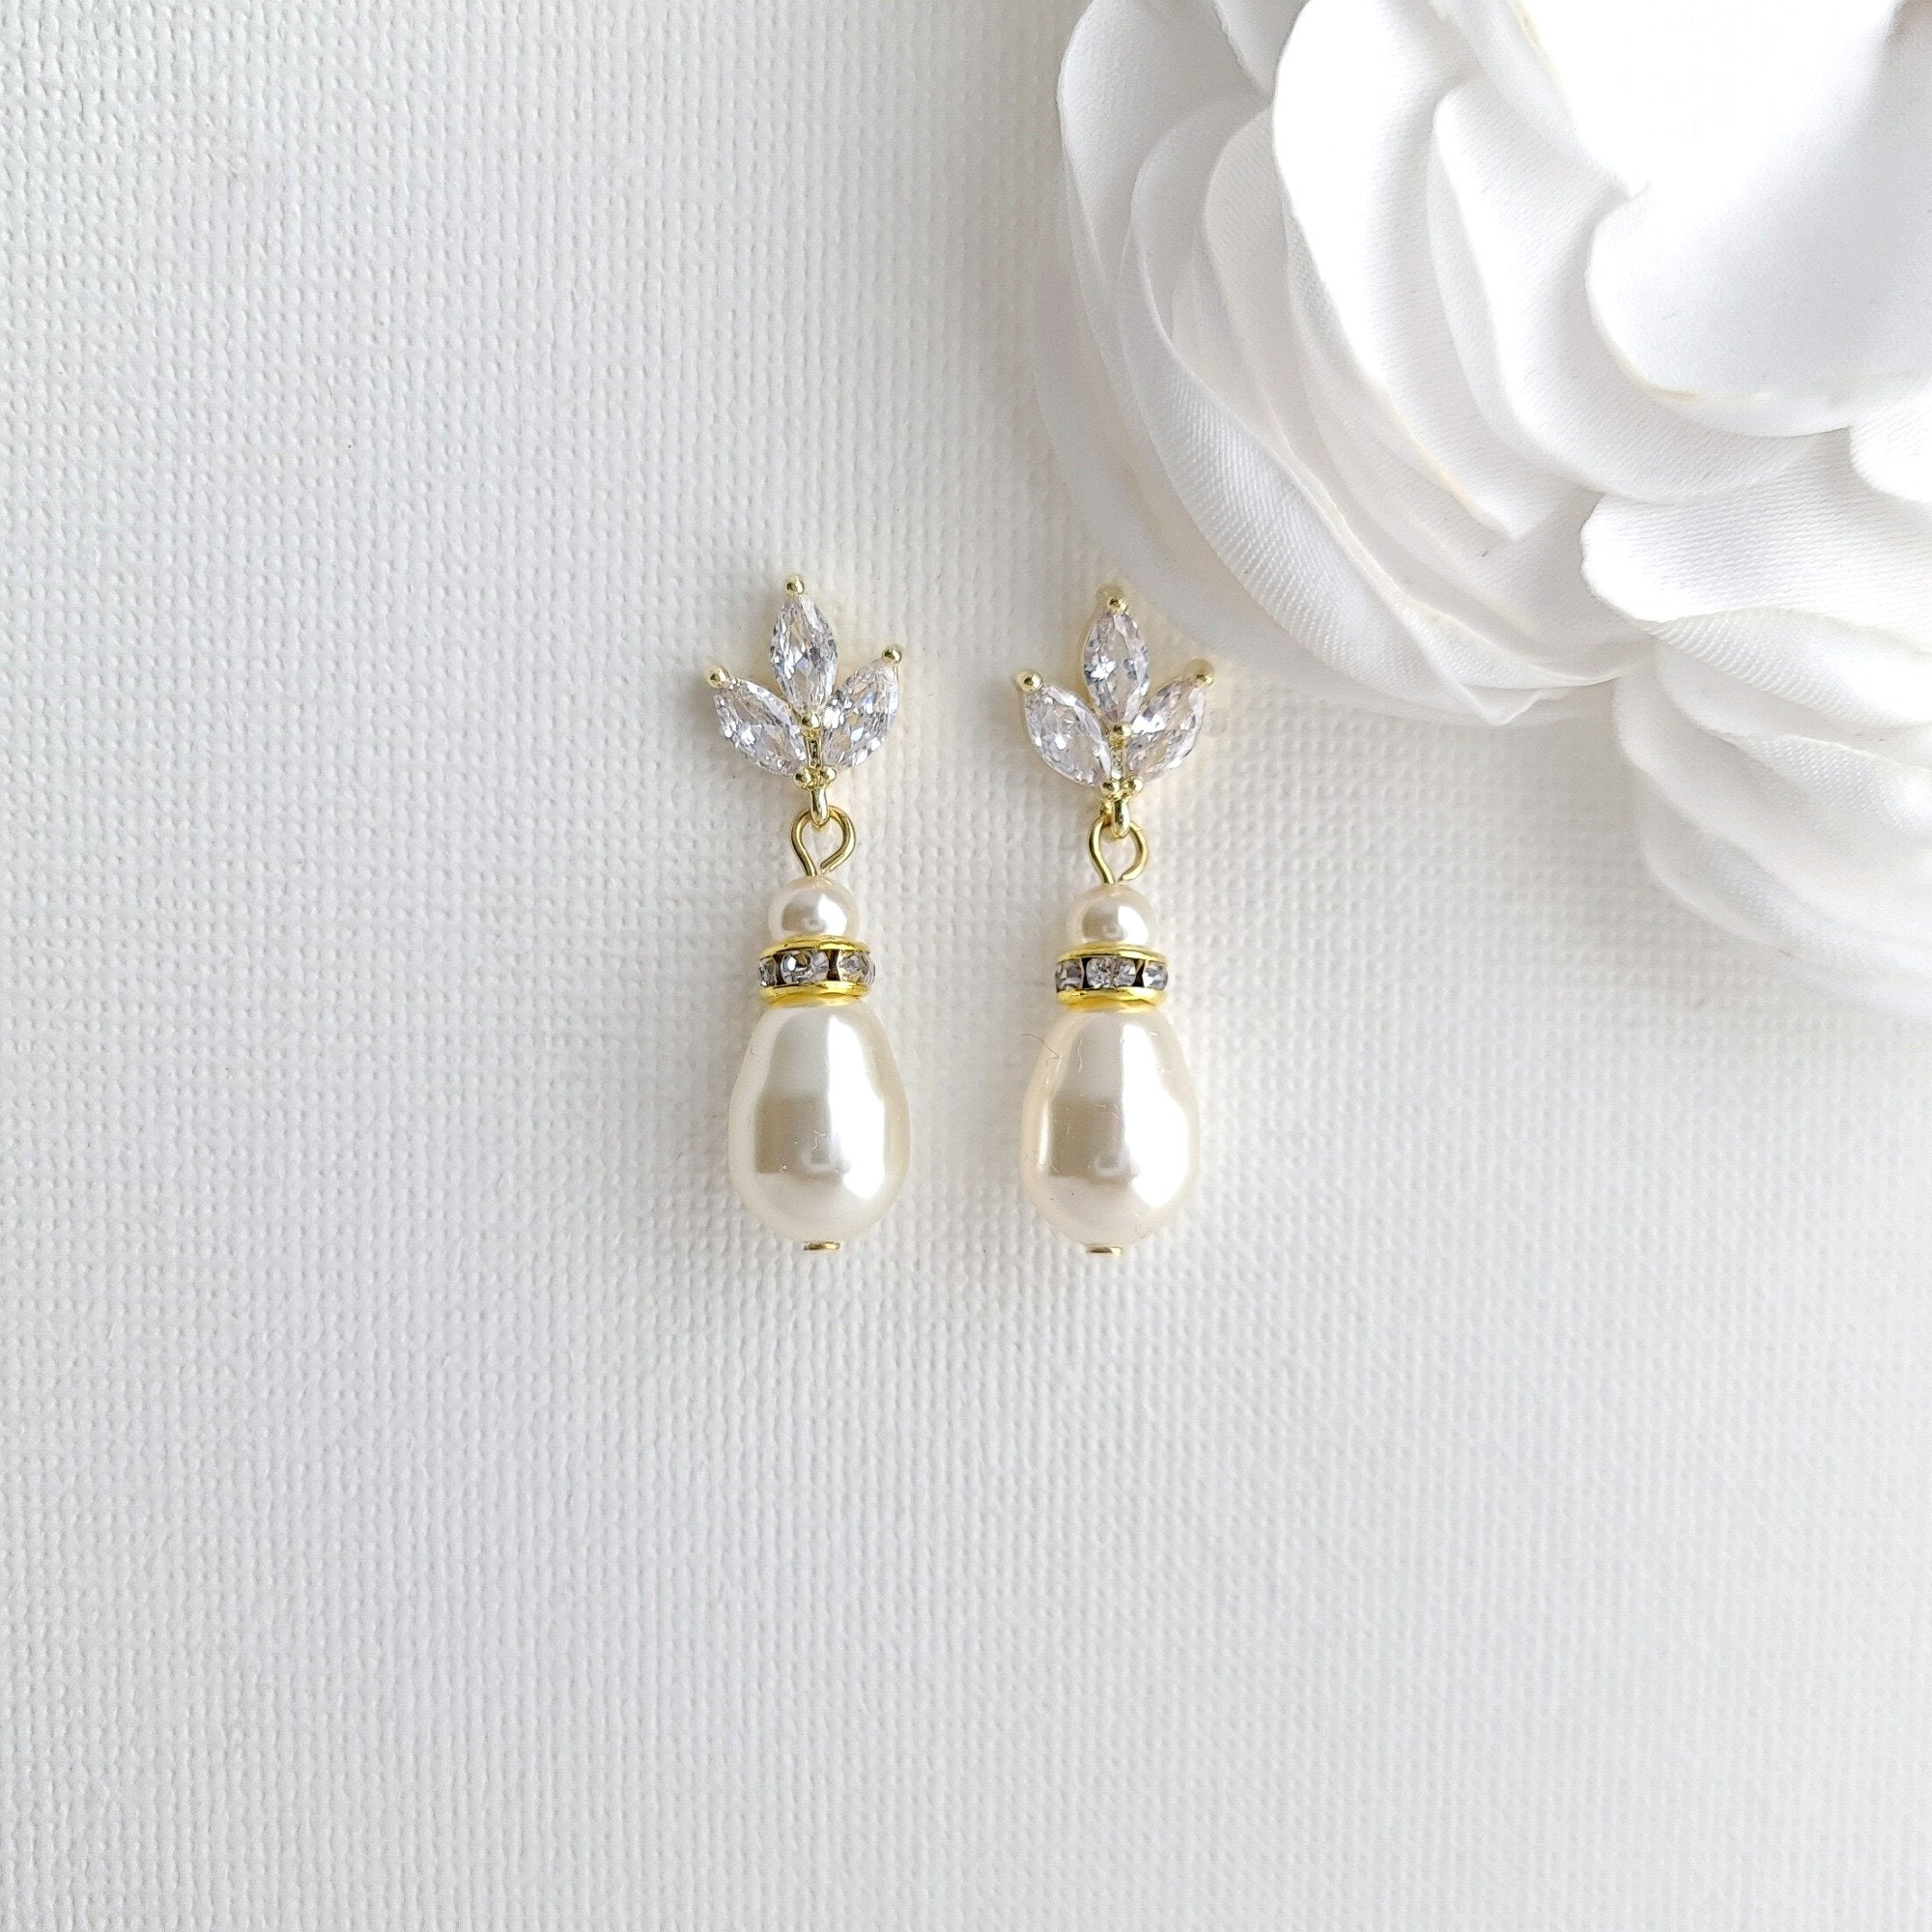 Pearl Bridal Jewelry Set in Ivory White or Cream Pearl Color with Necklace, Backdrop & Earrings-Katie - PoetryDesigns